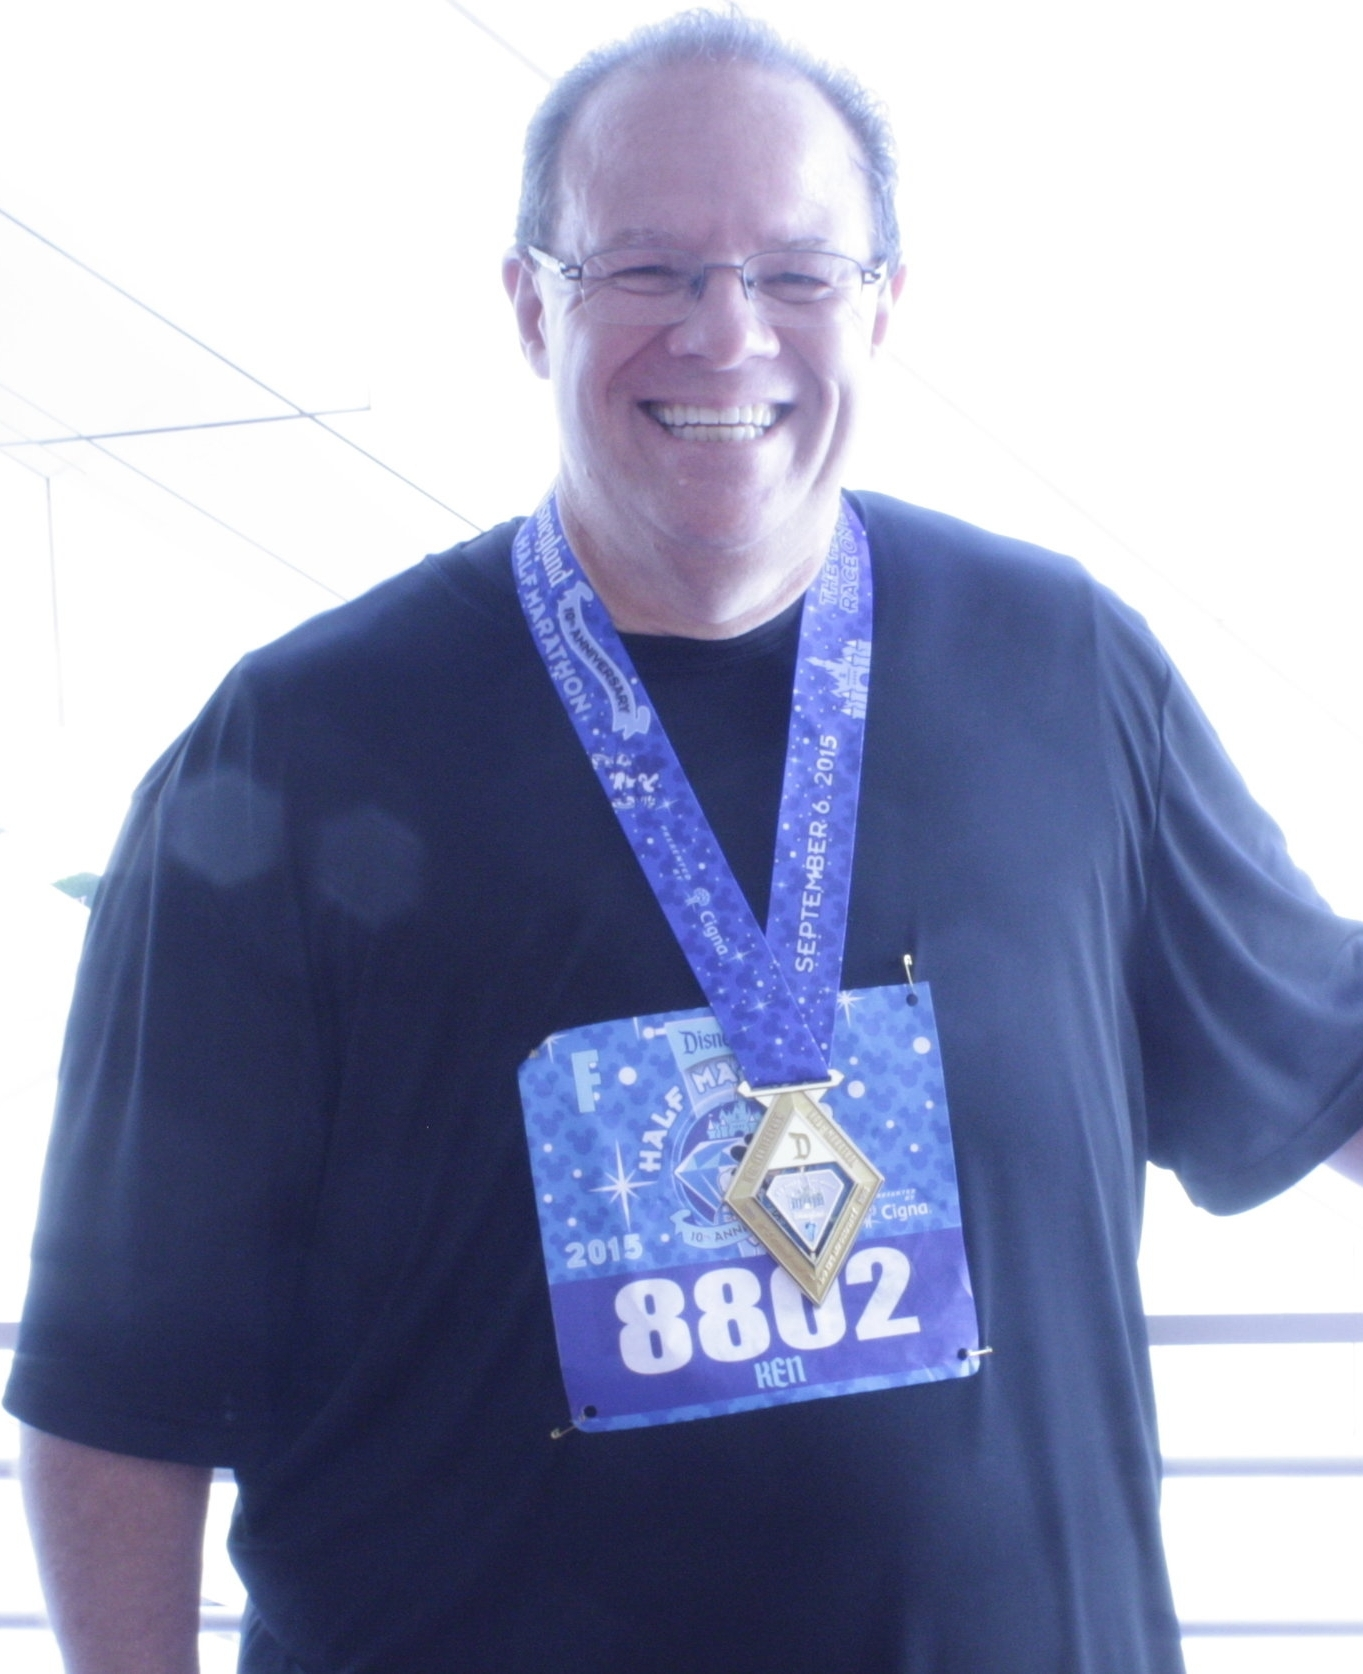 Having Lost 150+ Lbs - And run (most of) his first Half Marathon. Injury Prevented FInishing.